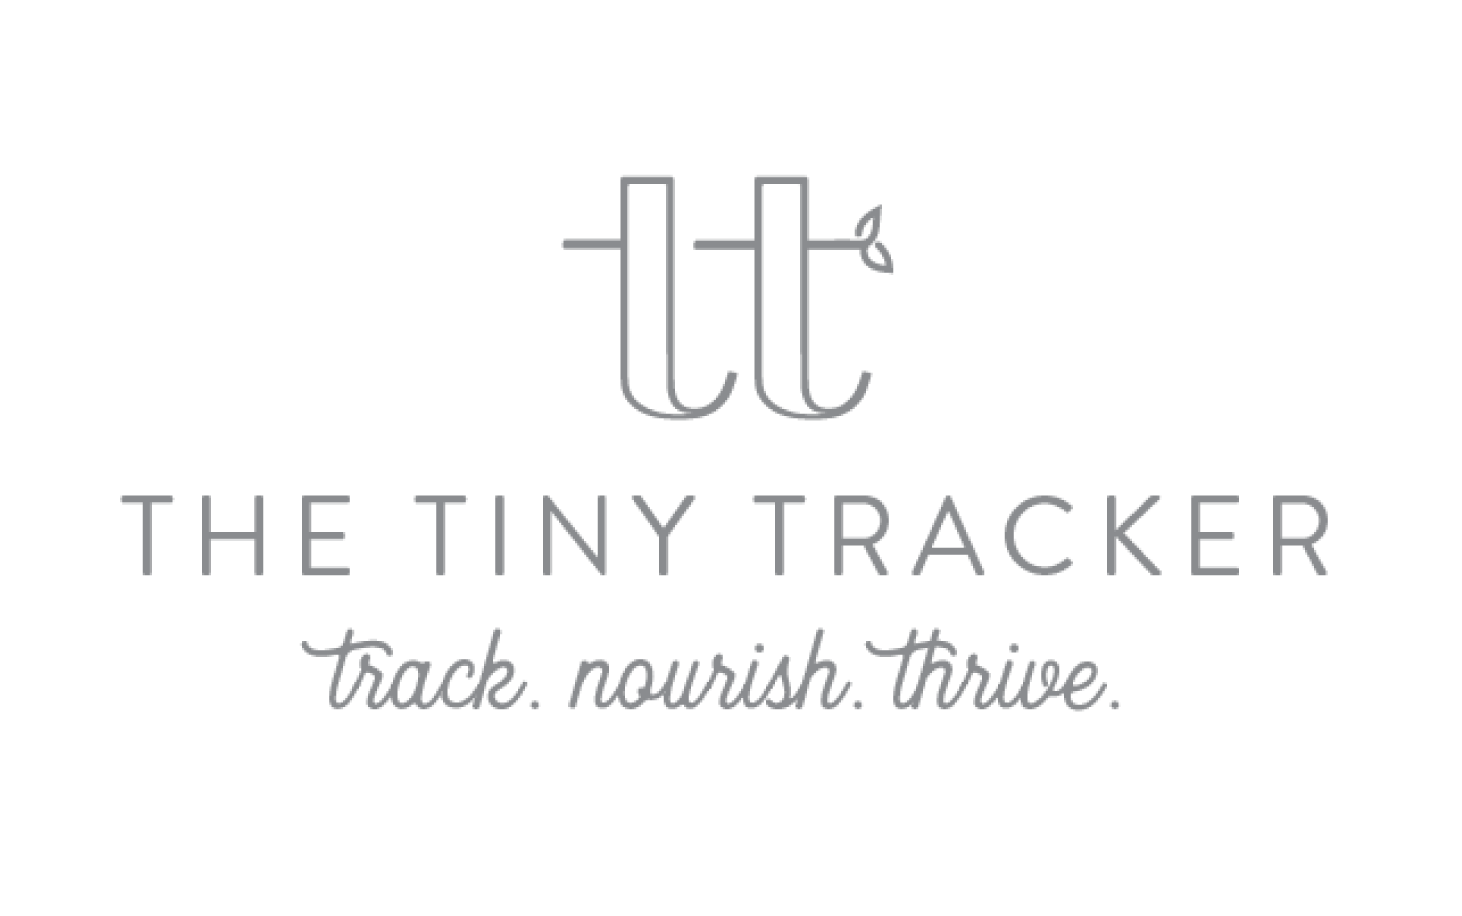 The TinyTracker